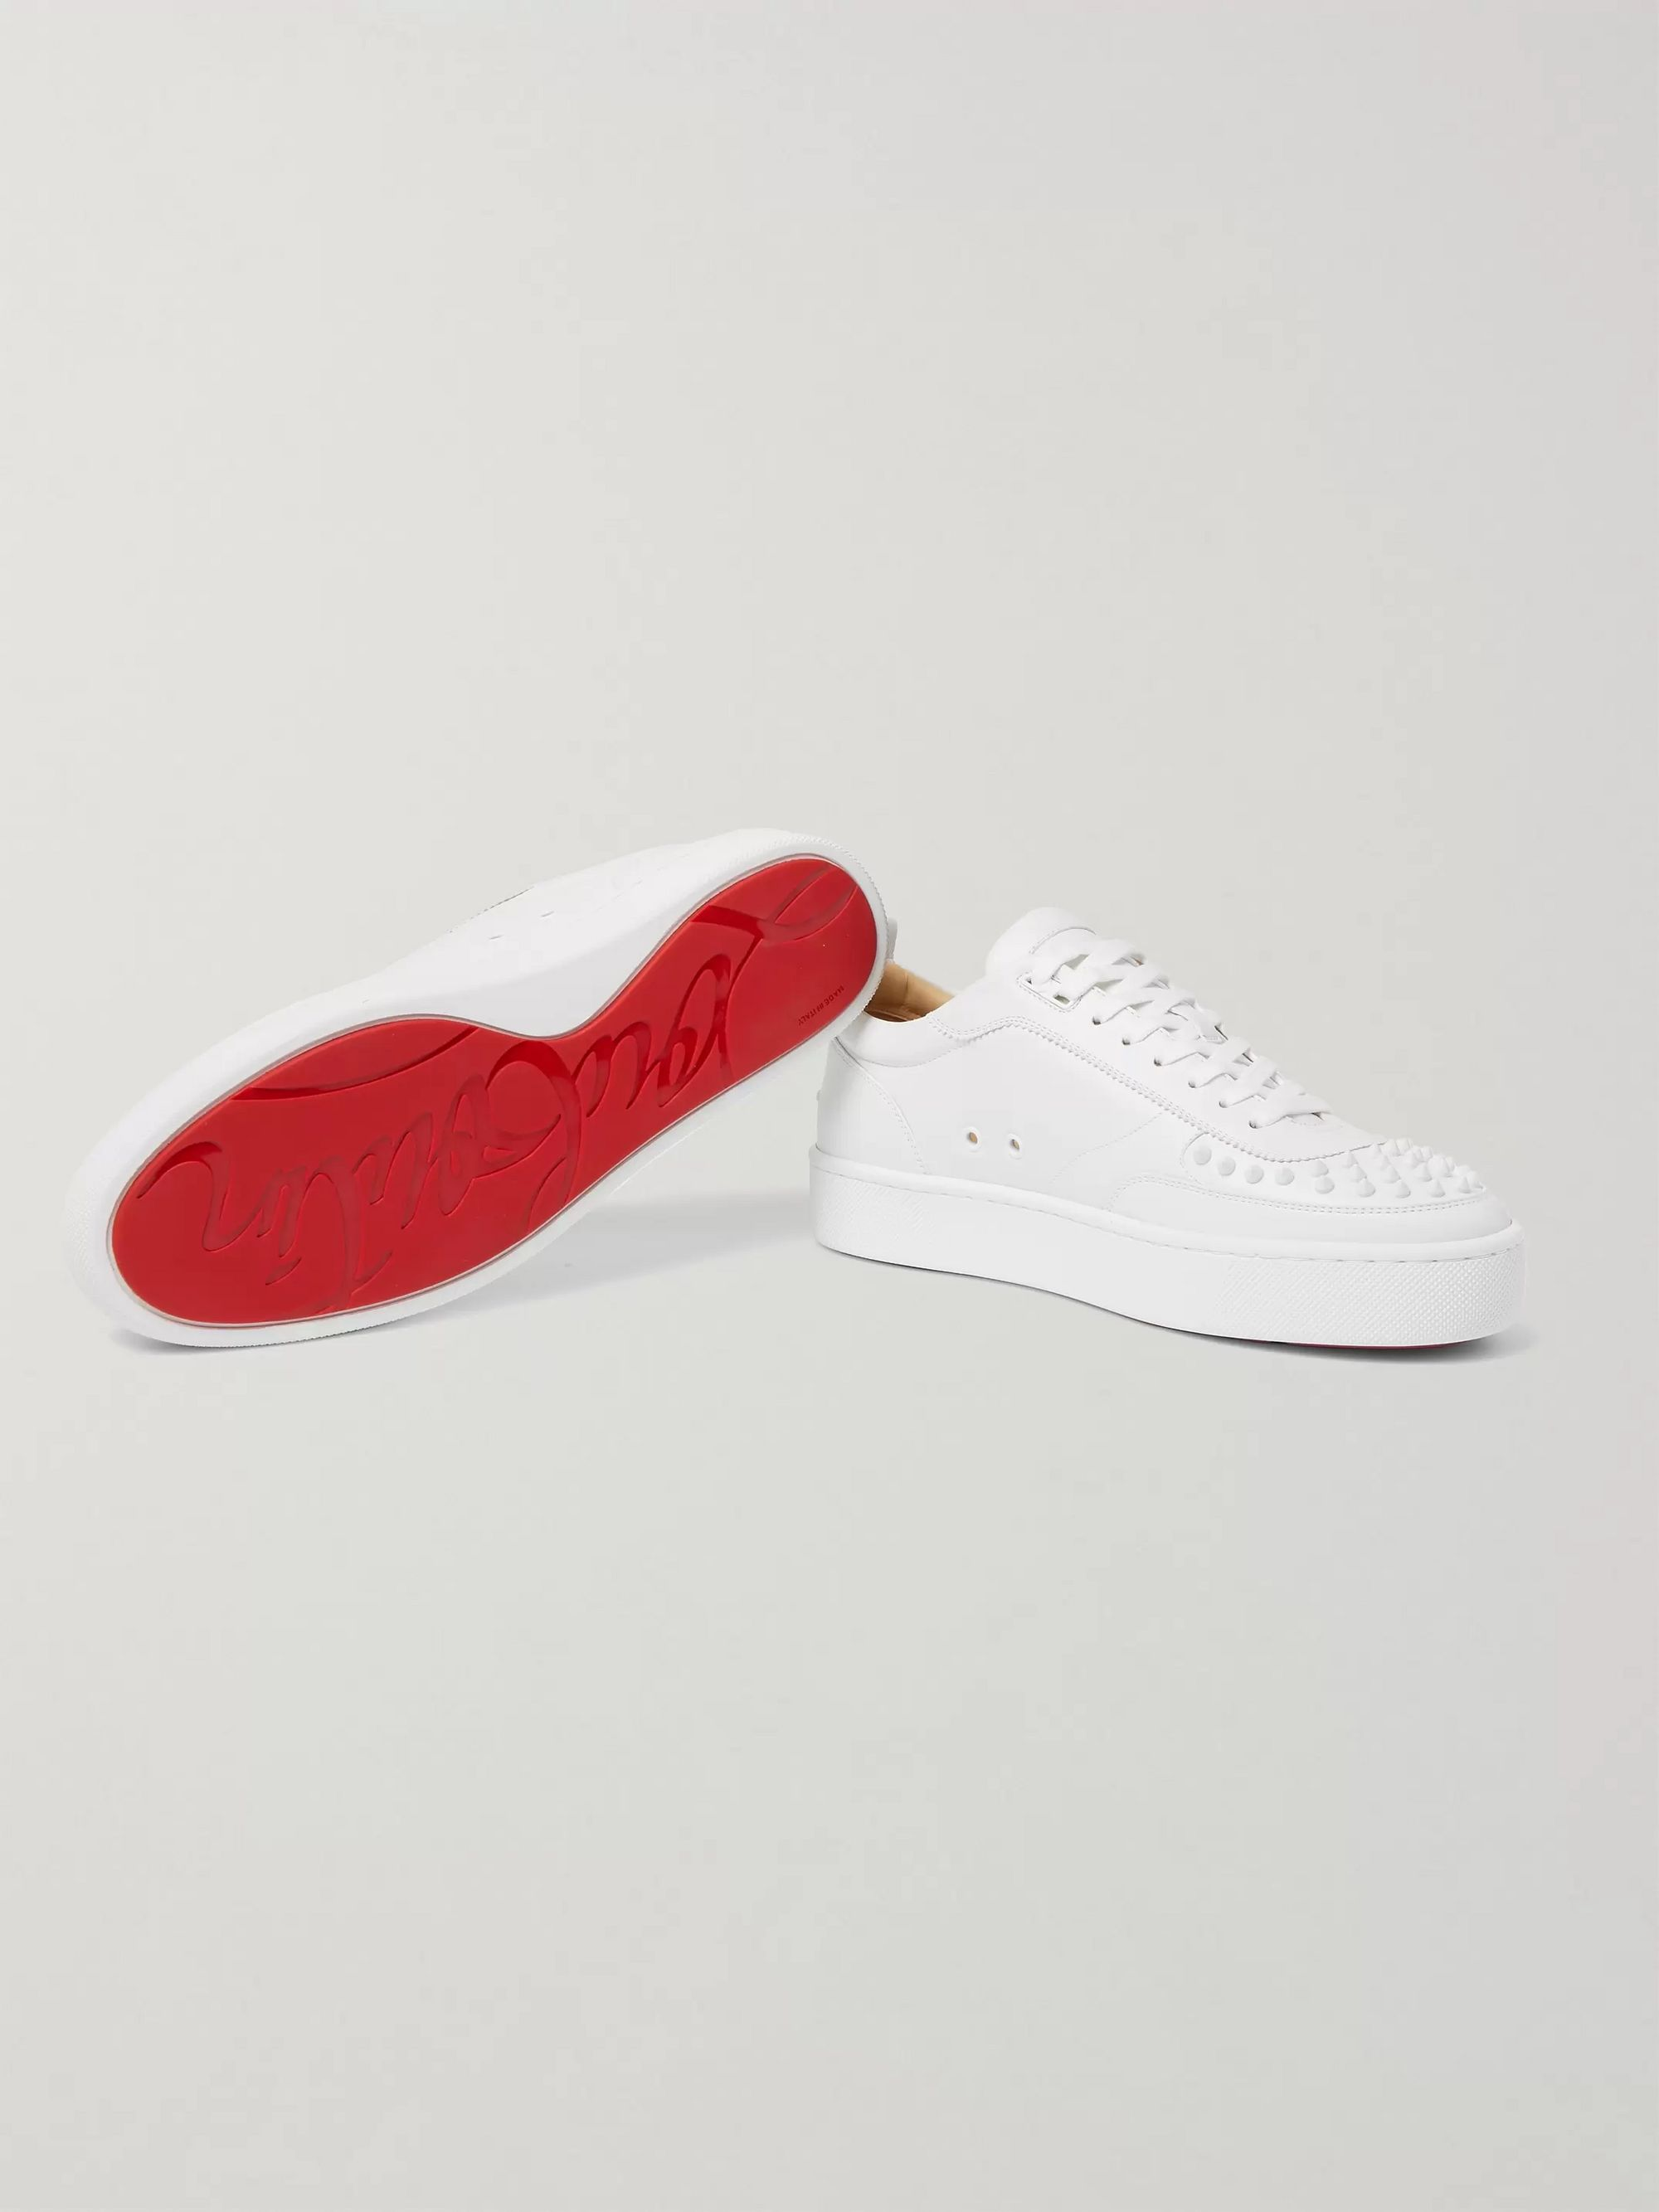 Christian Louboutin Happyrui Spiked Leather Sneakers